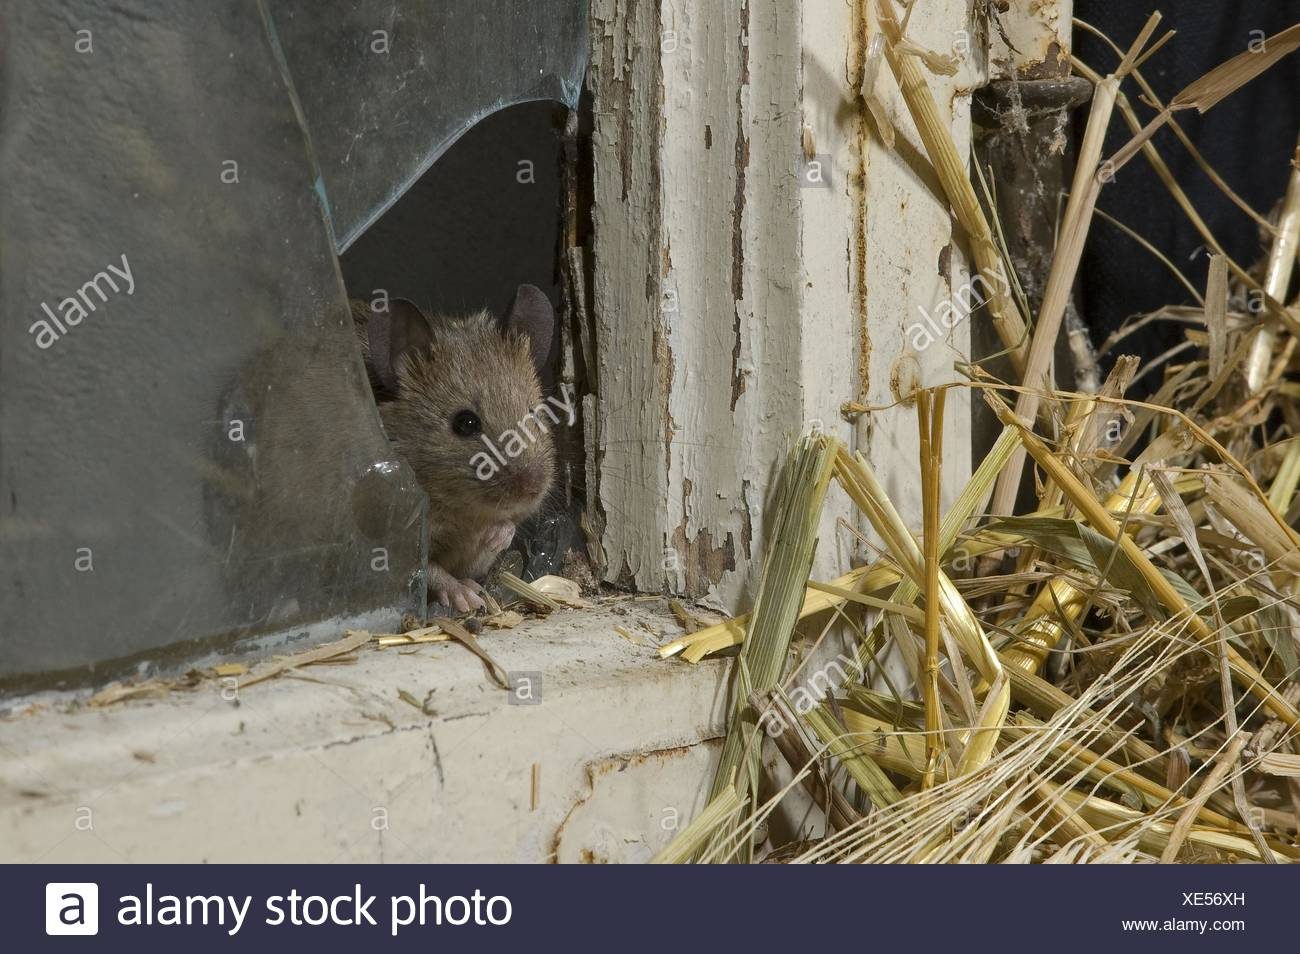 mouse at broken window - Stock Image